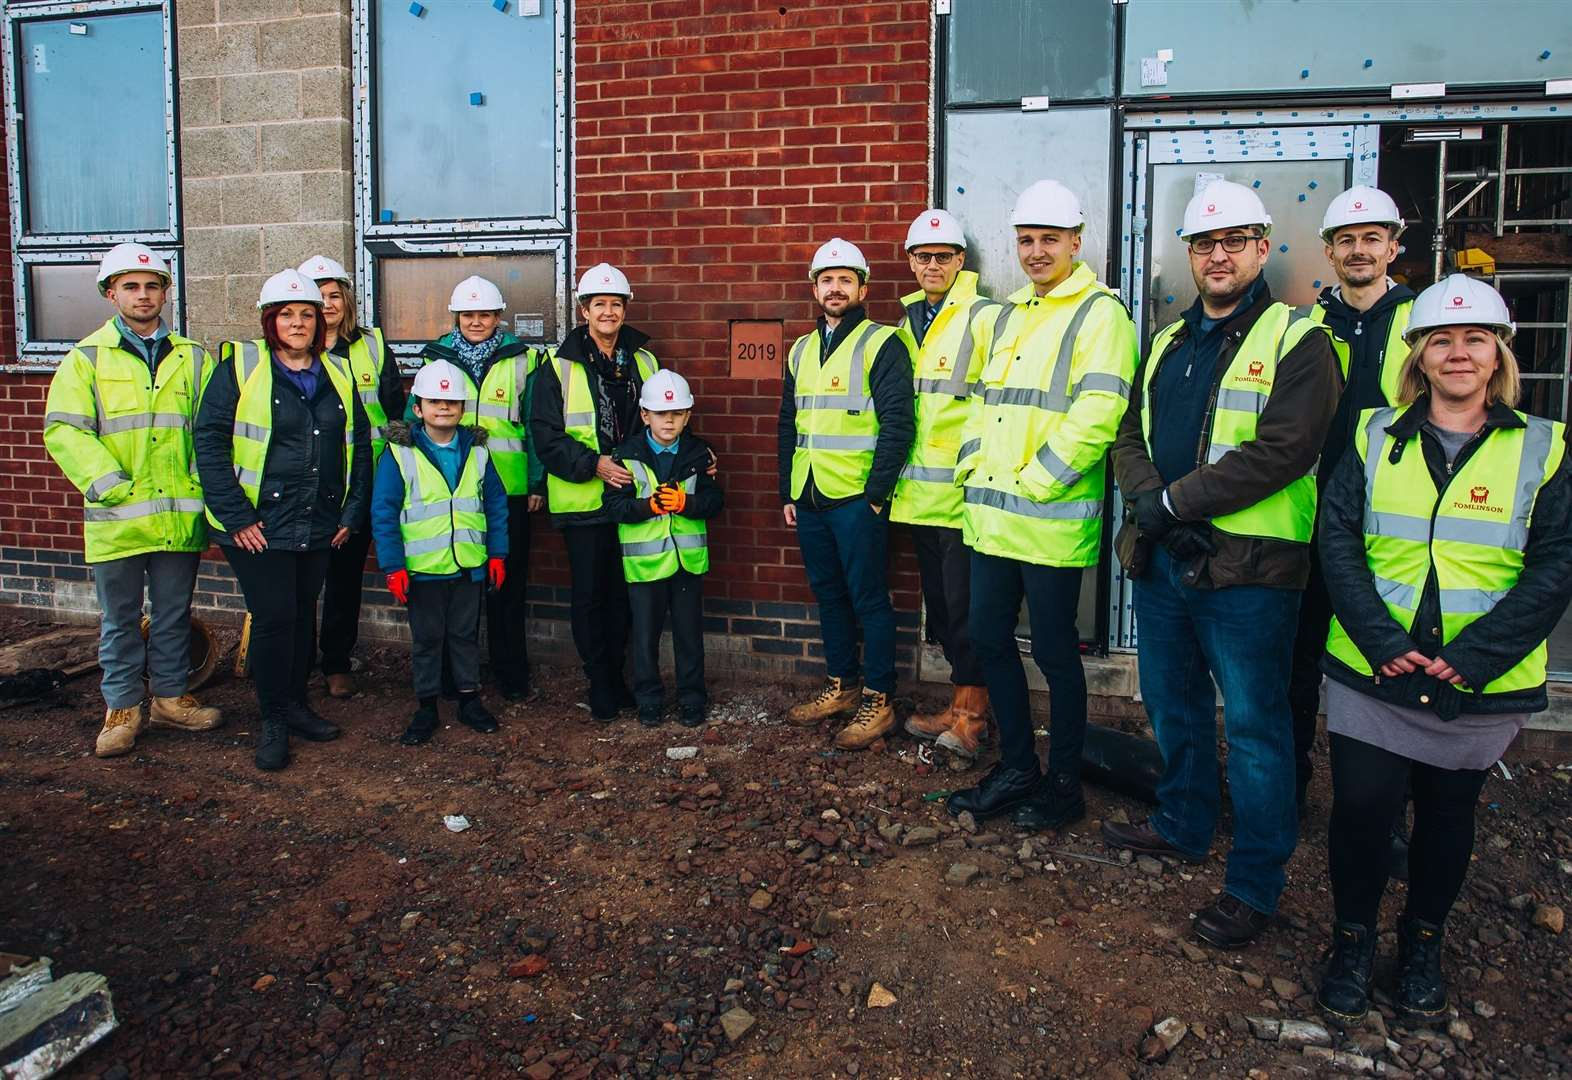 Pupils get first glance at their new Grantham school